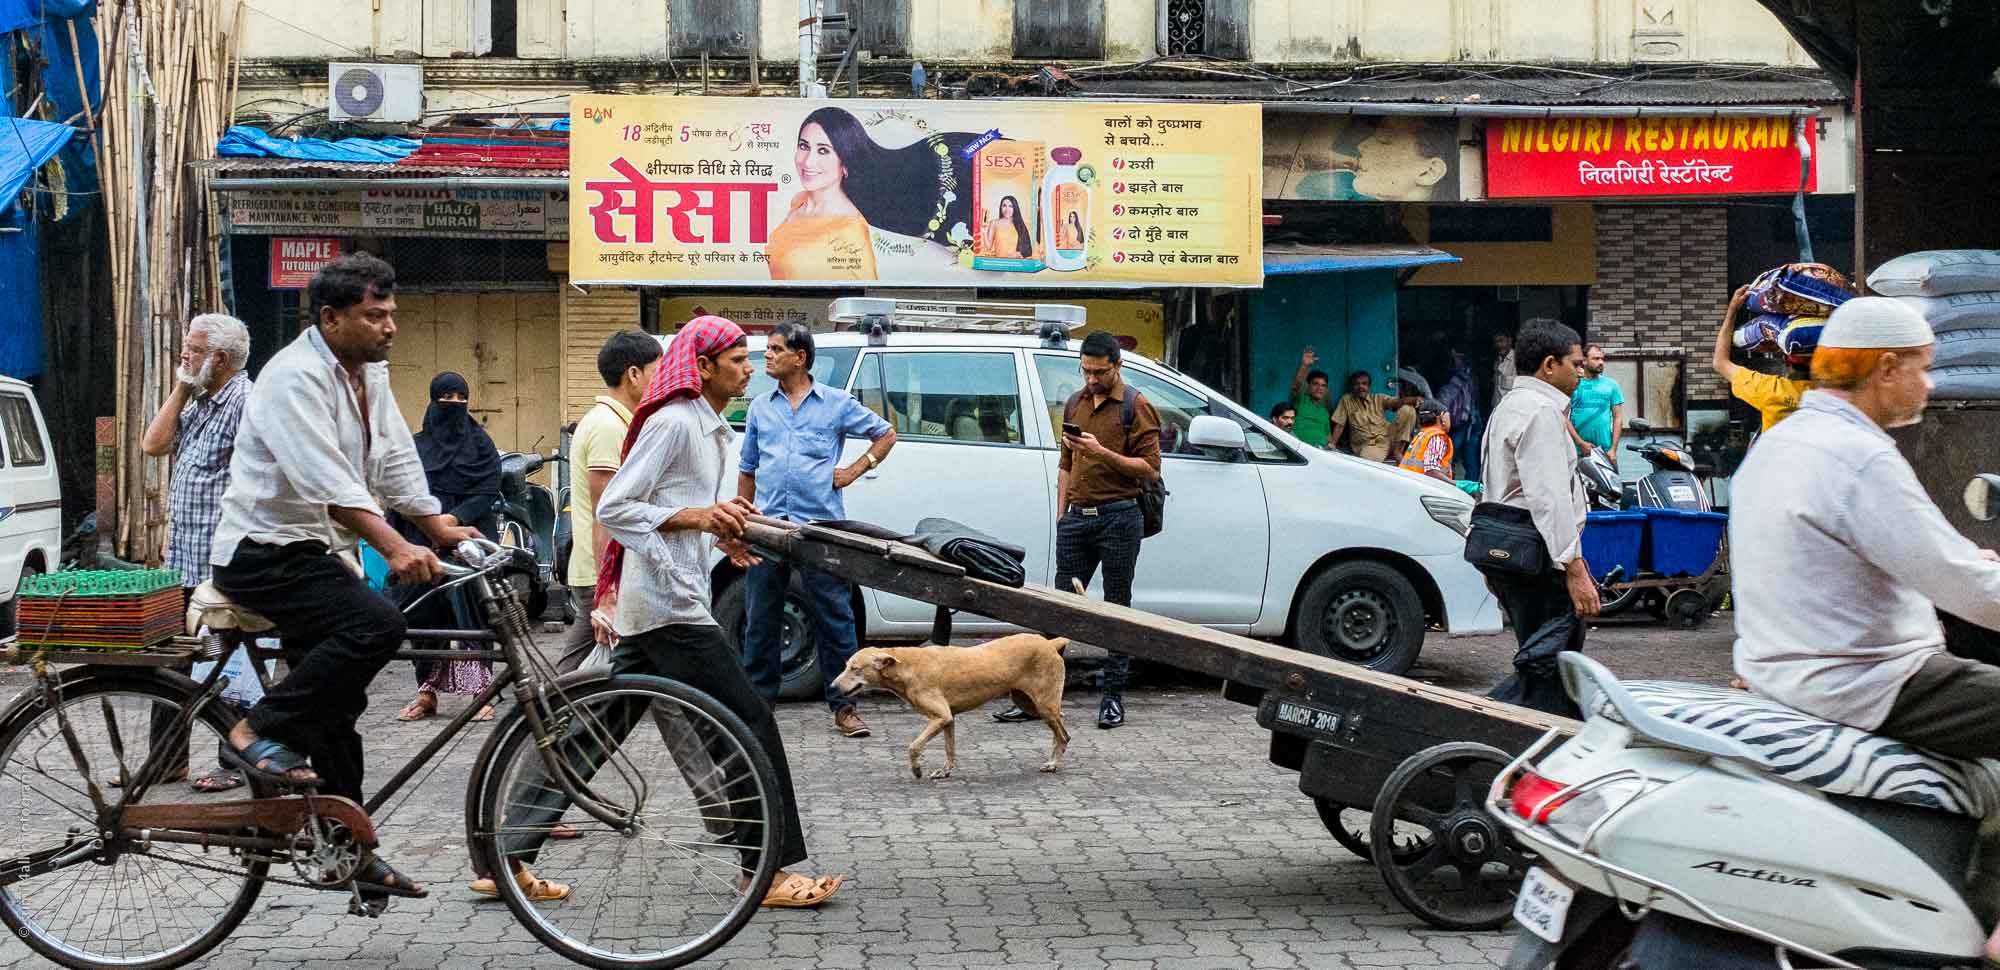 Chaos on the Street, Mumbai